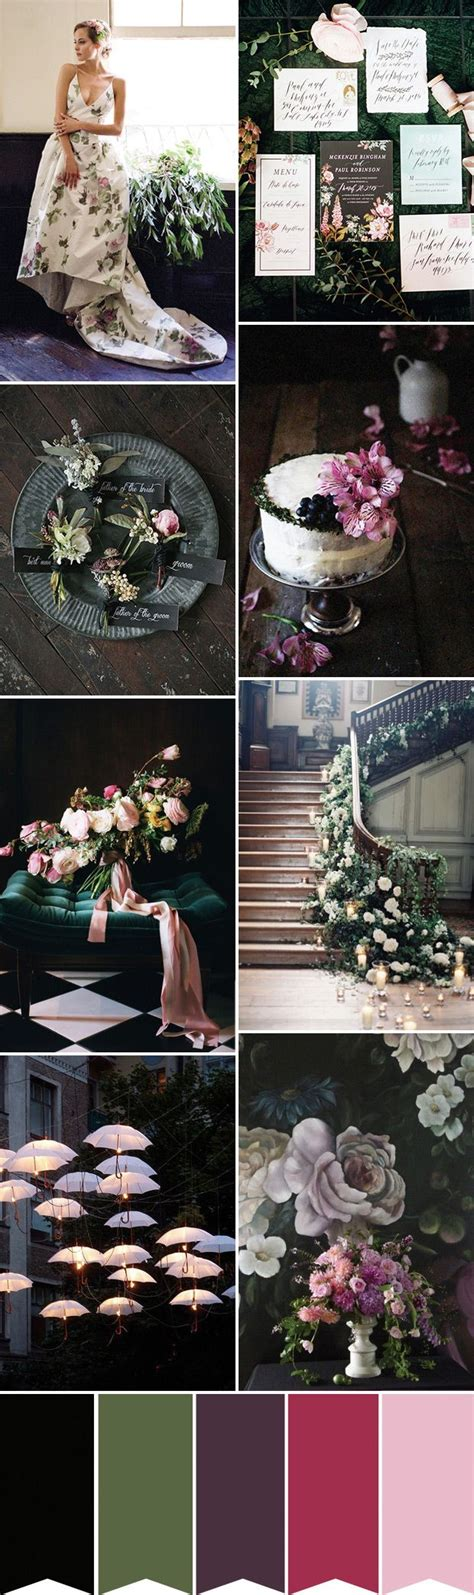 just a little inspiration just another colour of my life 25 best ideas about umbrella wedding on pinterest rainy